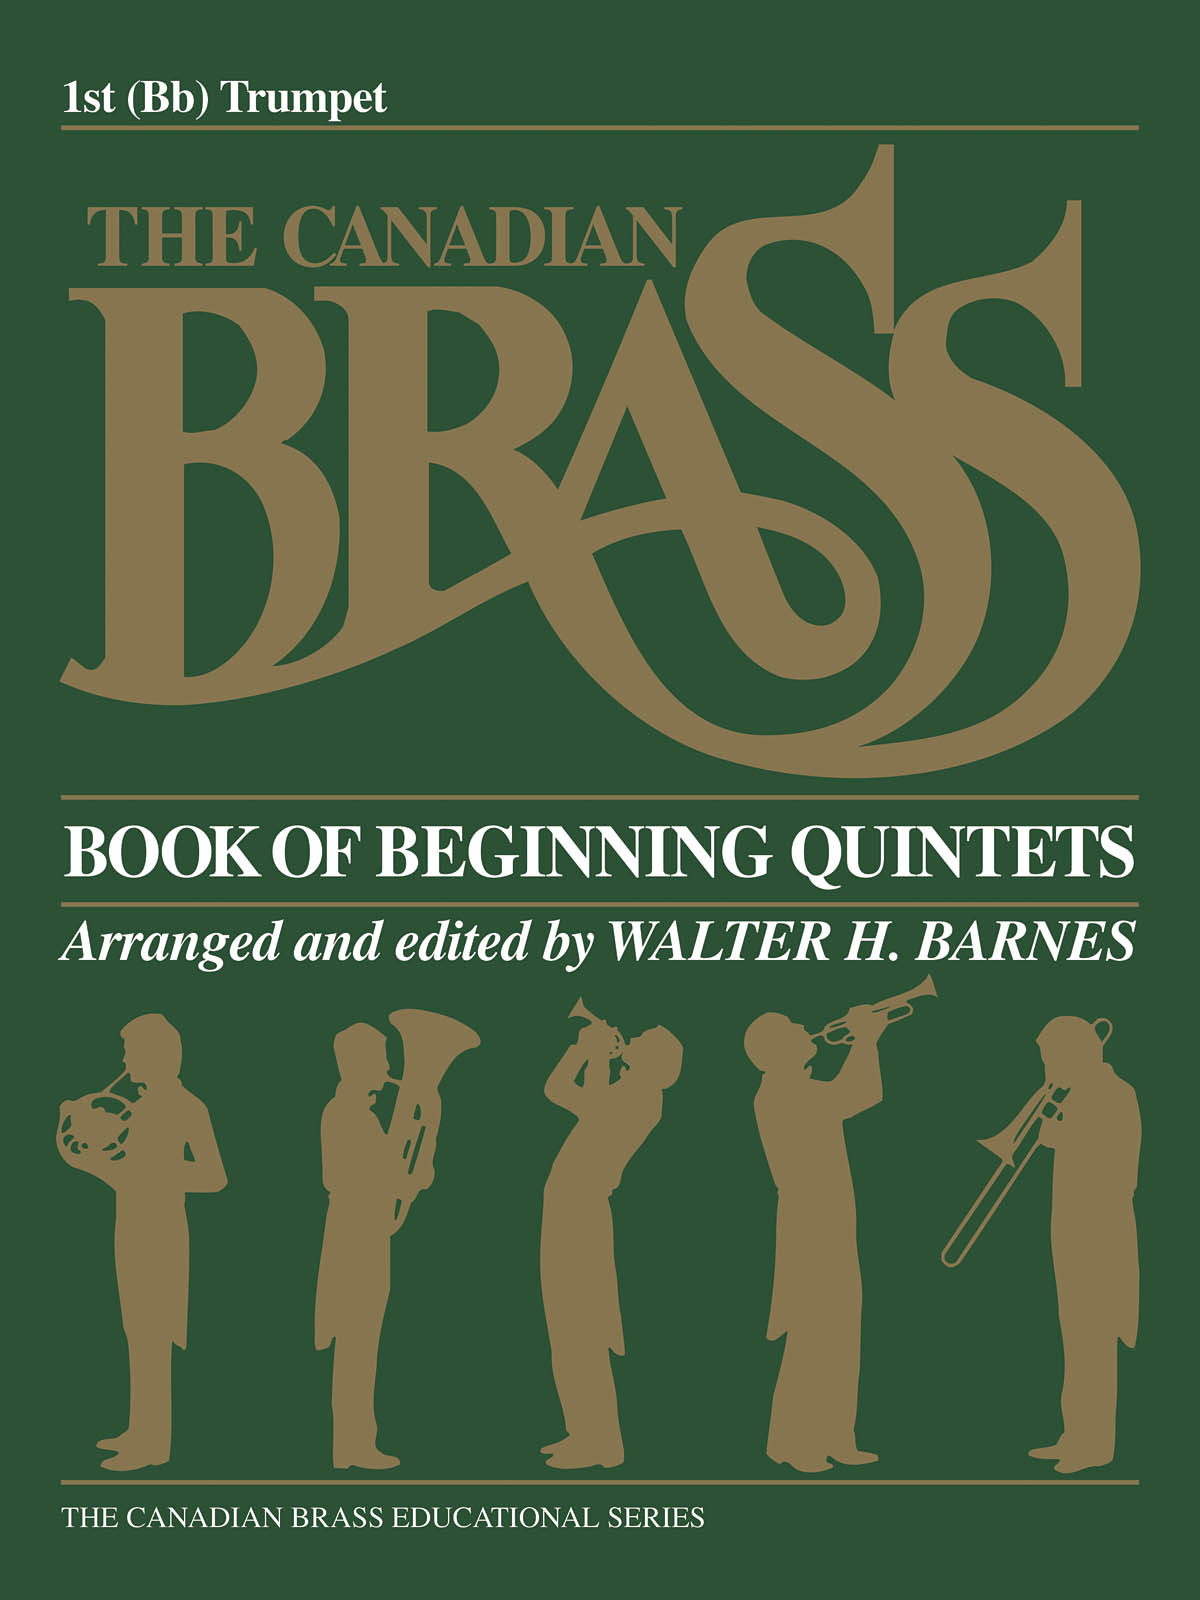 The Canadian Brass: The Canadian Brass Book of Beginning Quintets: Trumpet: Part